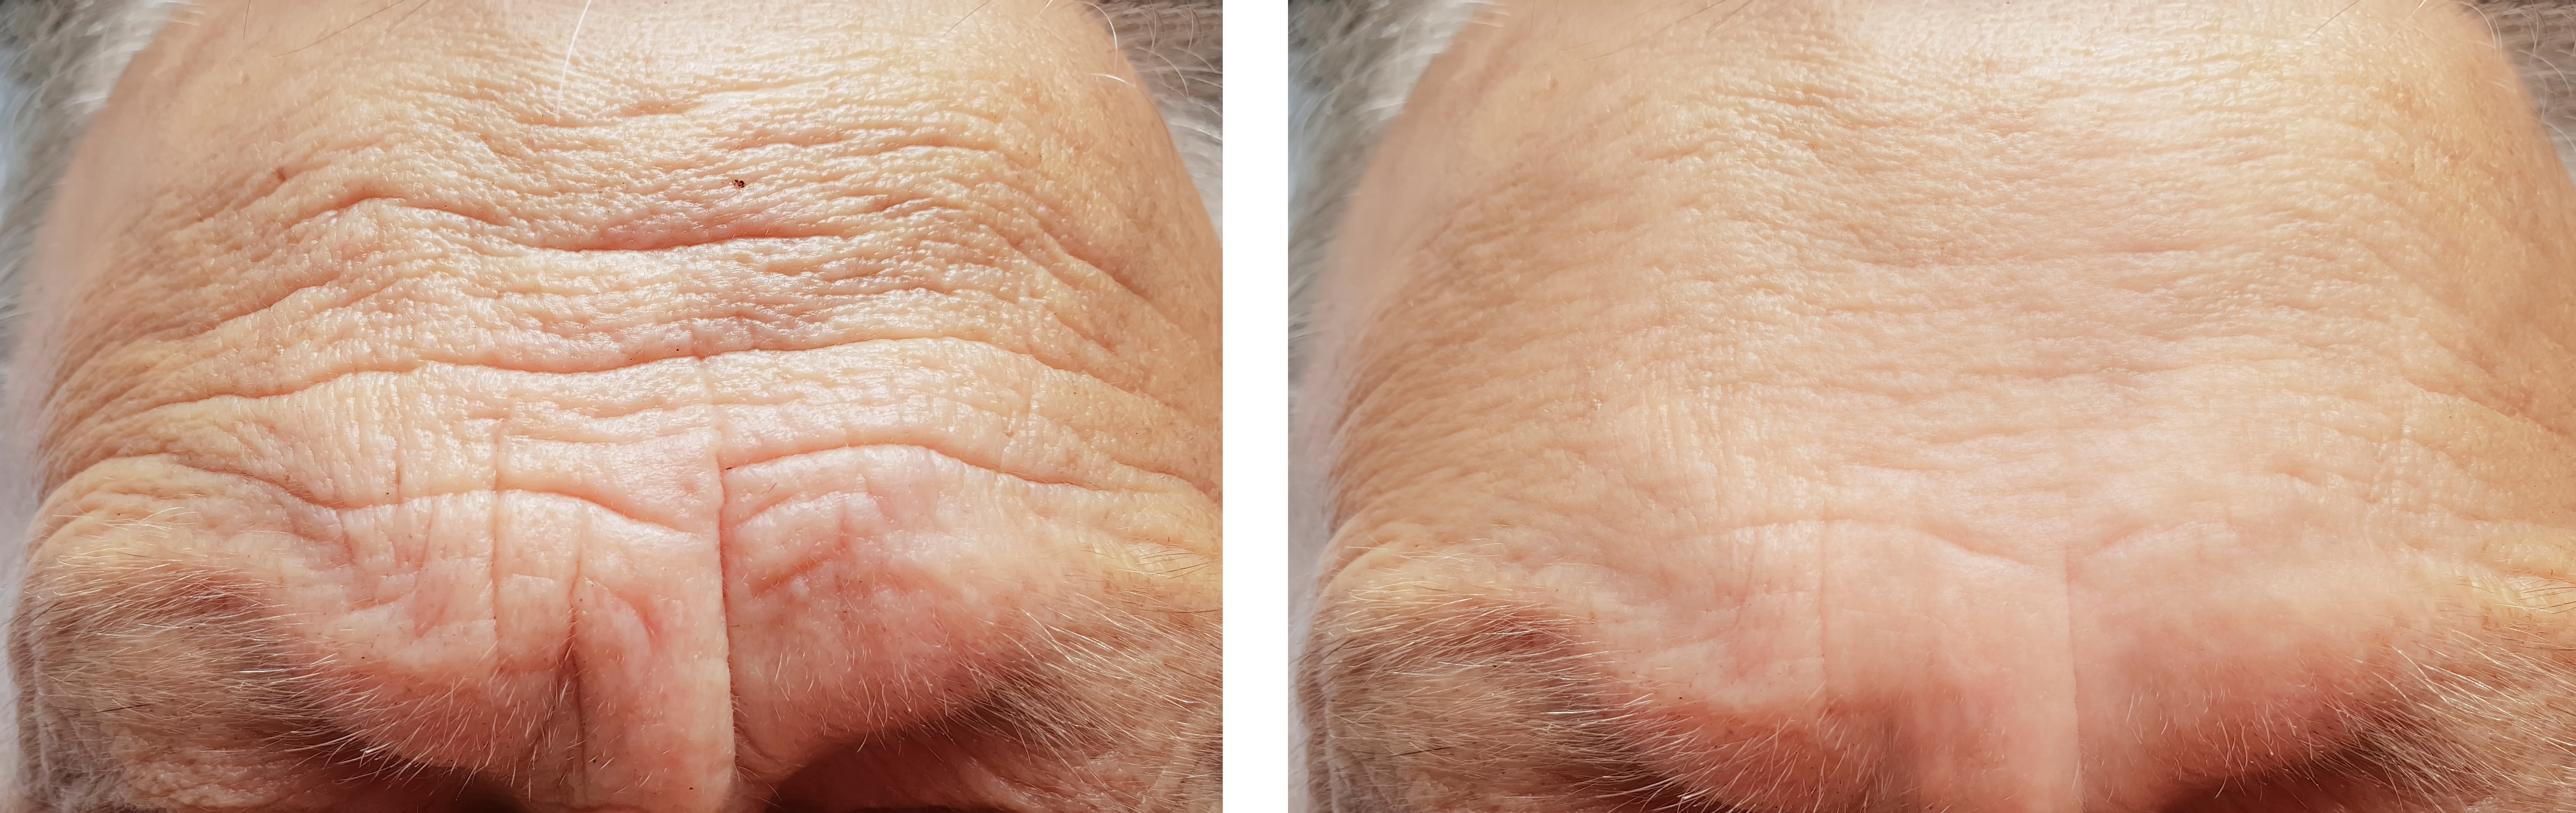 Before and after images showing the effects of Botulinum toxin (Botox) injections on smoothing deep wrinkles and creases in forehead region.